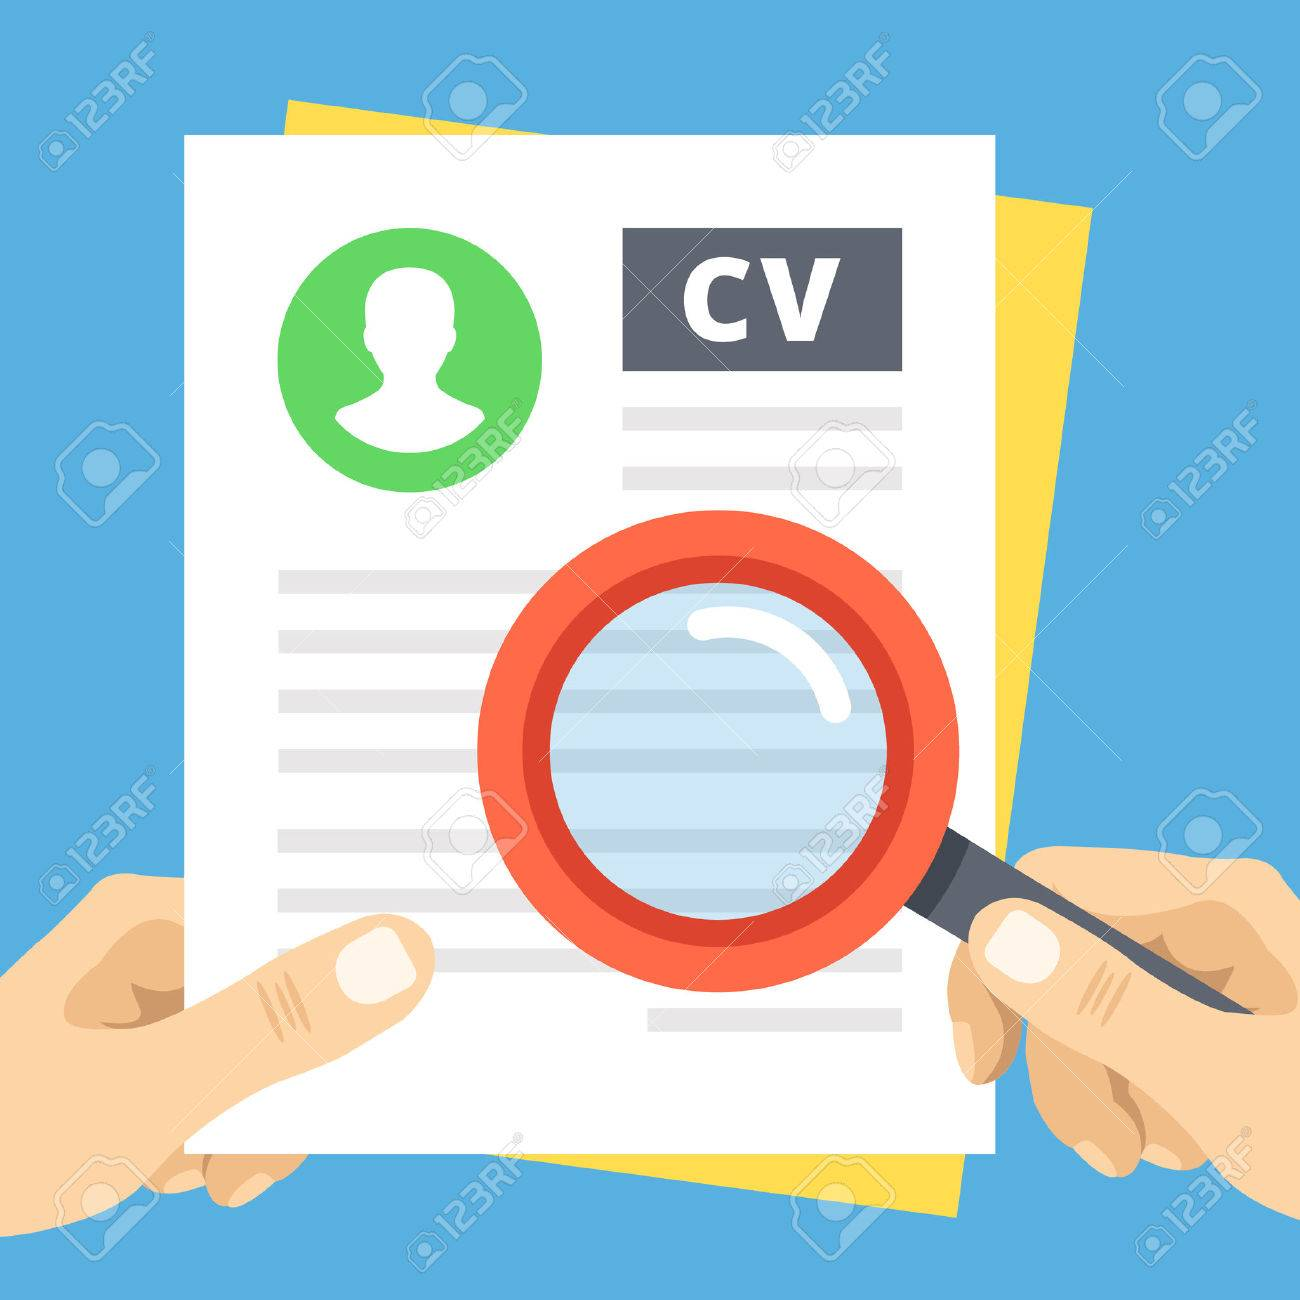 Cv Review Flat Illustration Hand With Magnifier Over Curriculum